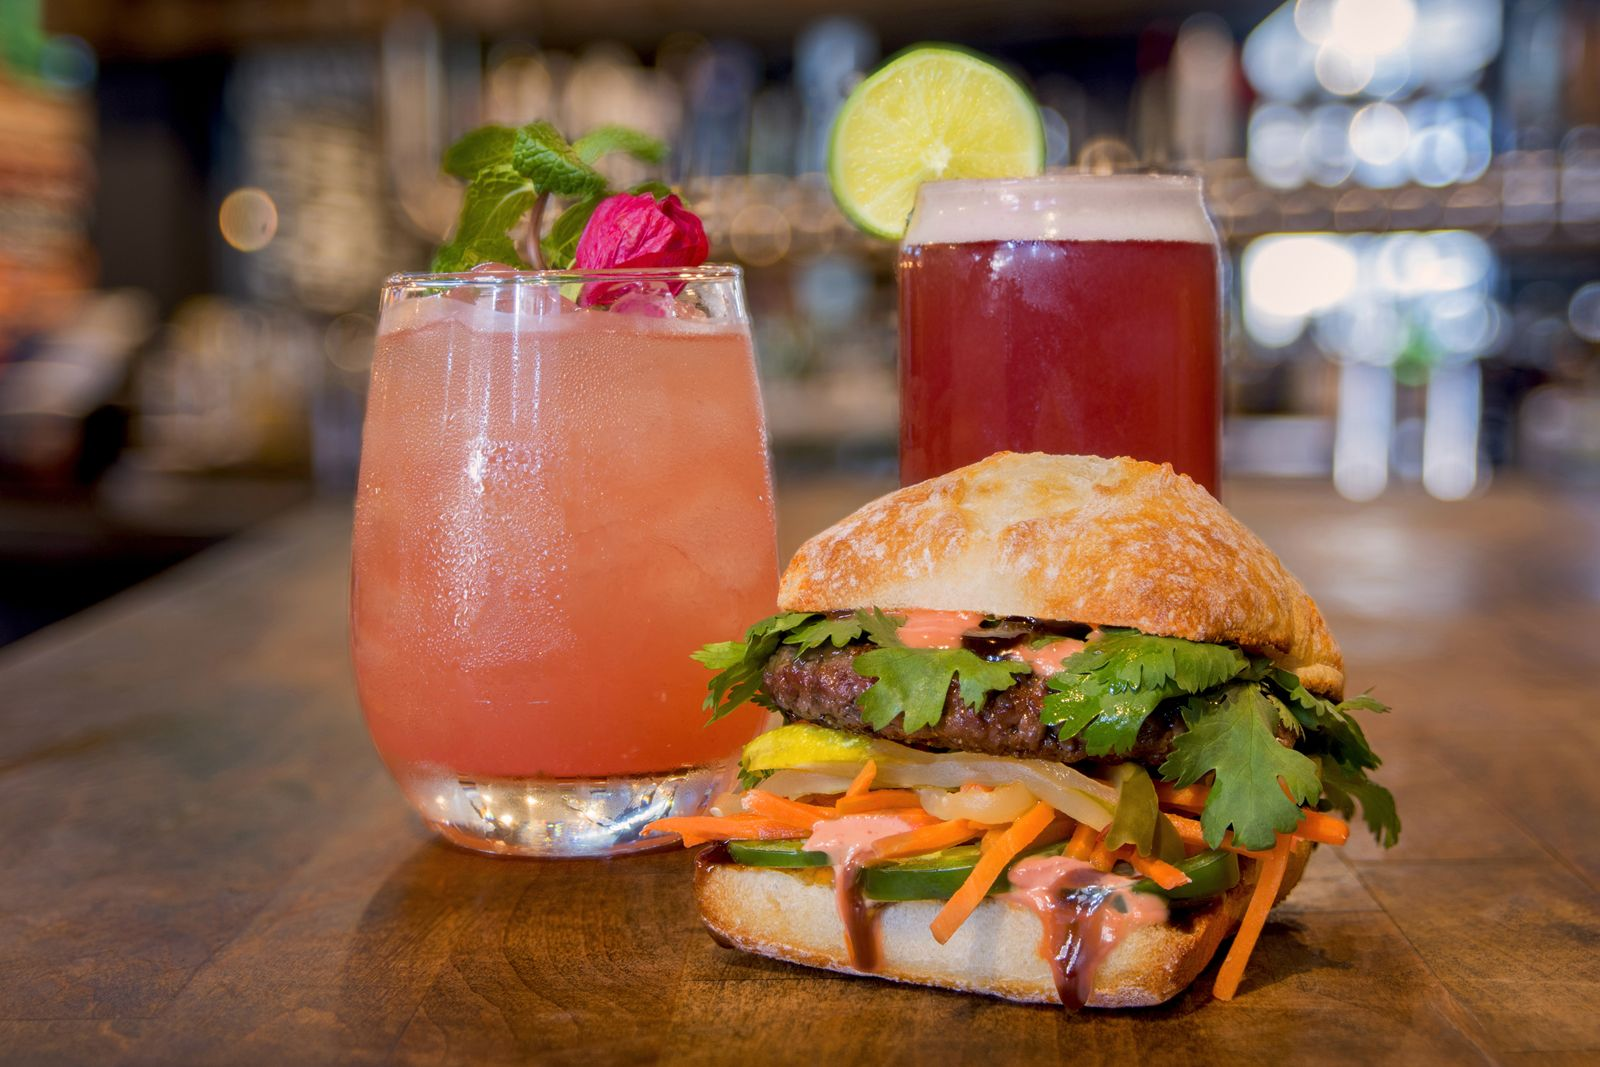 Dog Haus Introduces Its First Vegan Item and Two New Cocktails in Partnership with No Kid Hungry